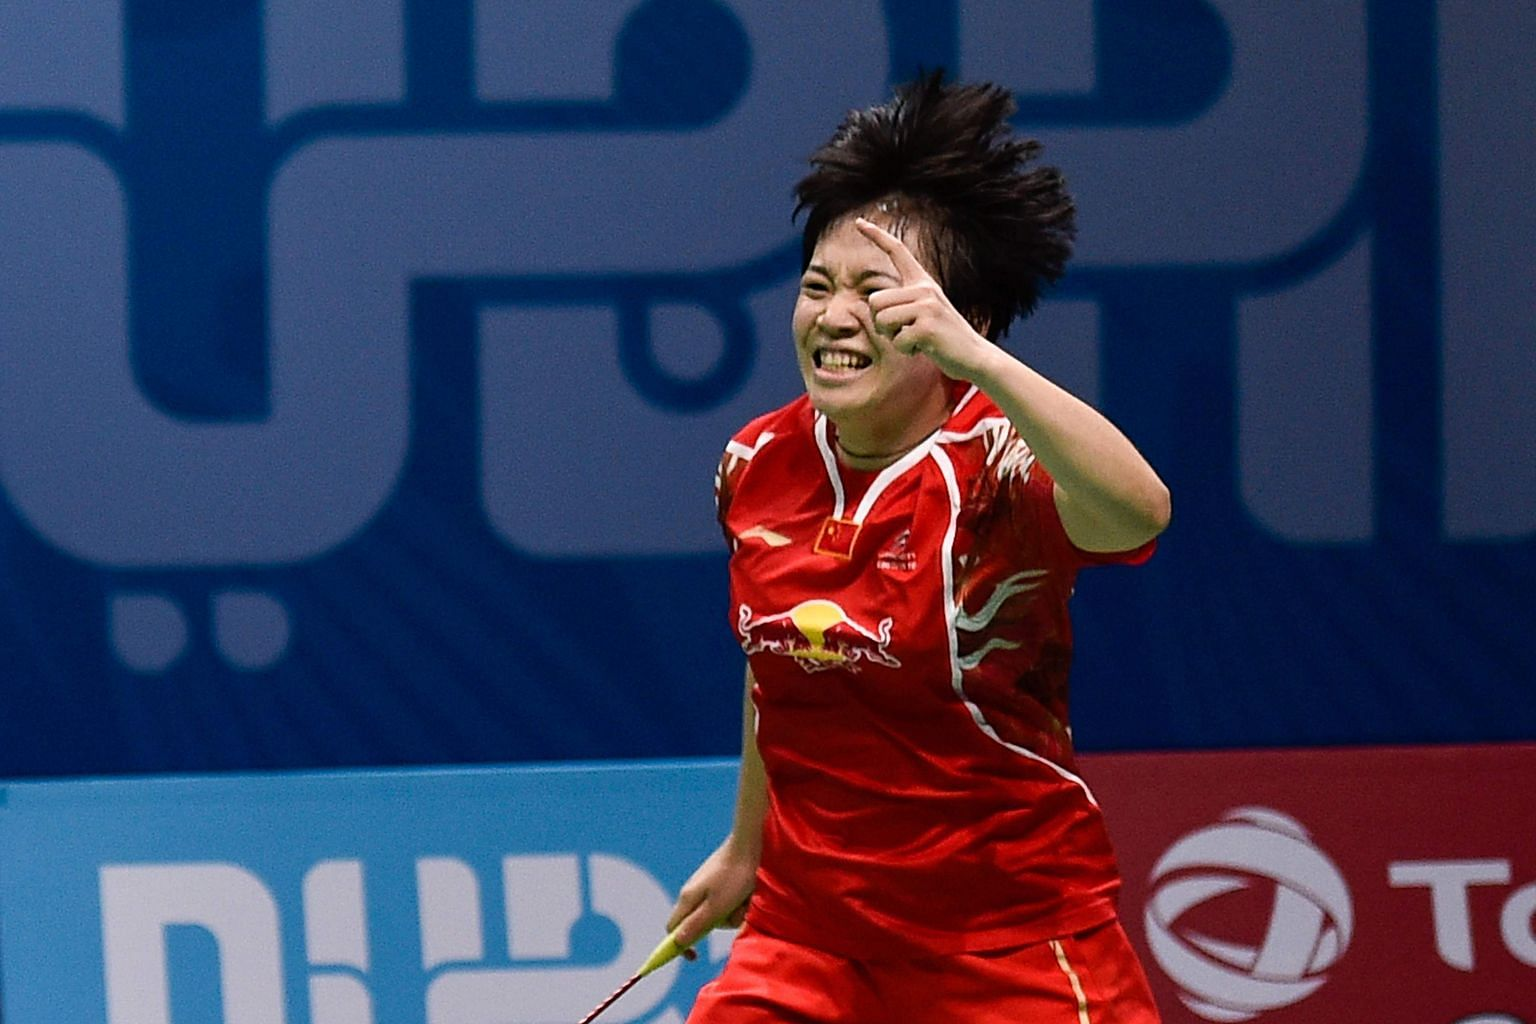 Chen Qingchen was a double champion at the Dubai World Superseries Finals in December, partnering Jia Yifan to win the women's doubles title and teaming up with Zheng Siwei for the mixed doubles crown.